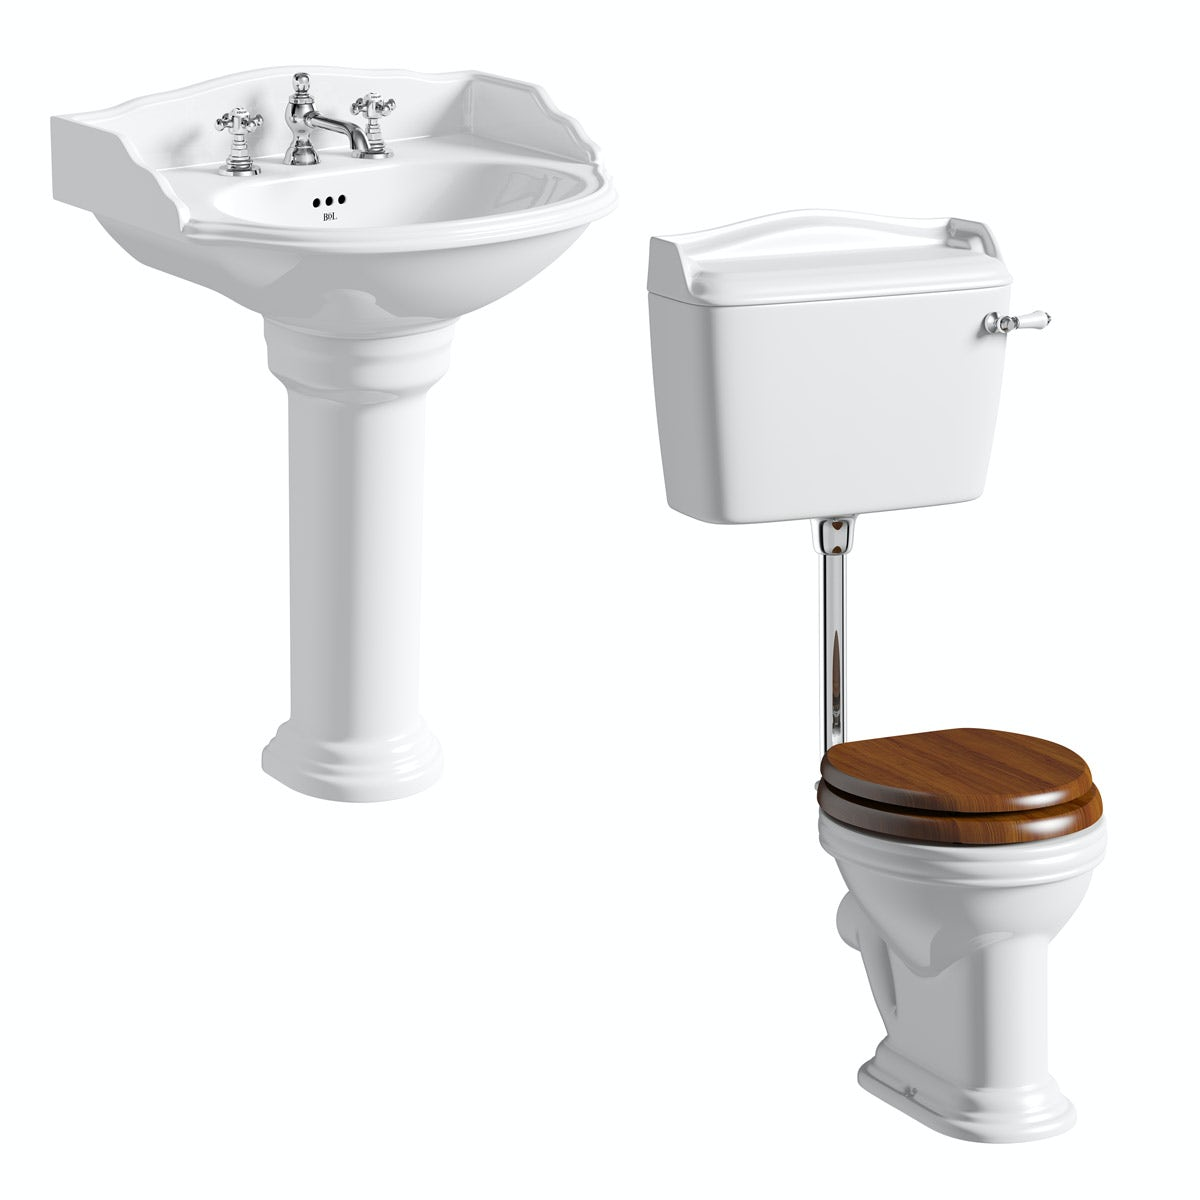 Belle de Louvain Charlet low level toilet and full pedestal suite with chrome fittings and taps